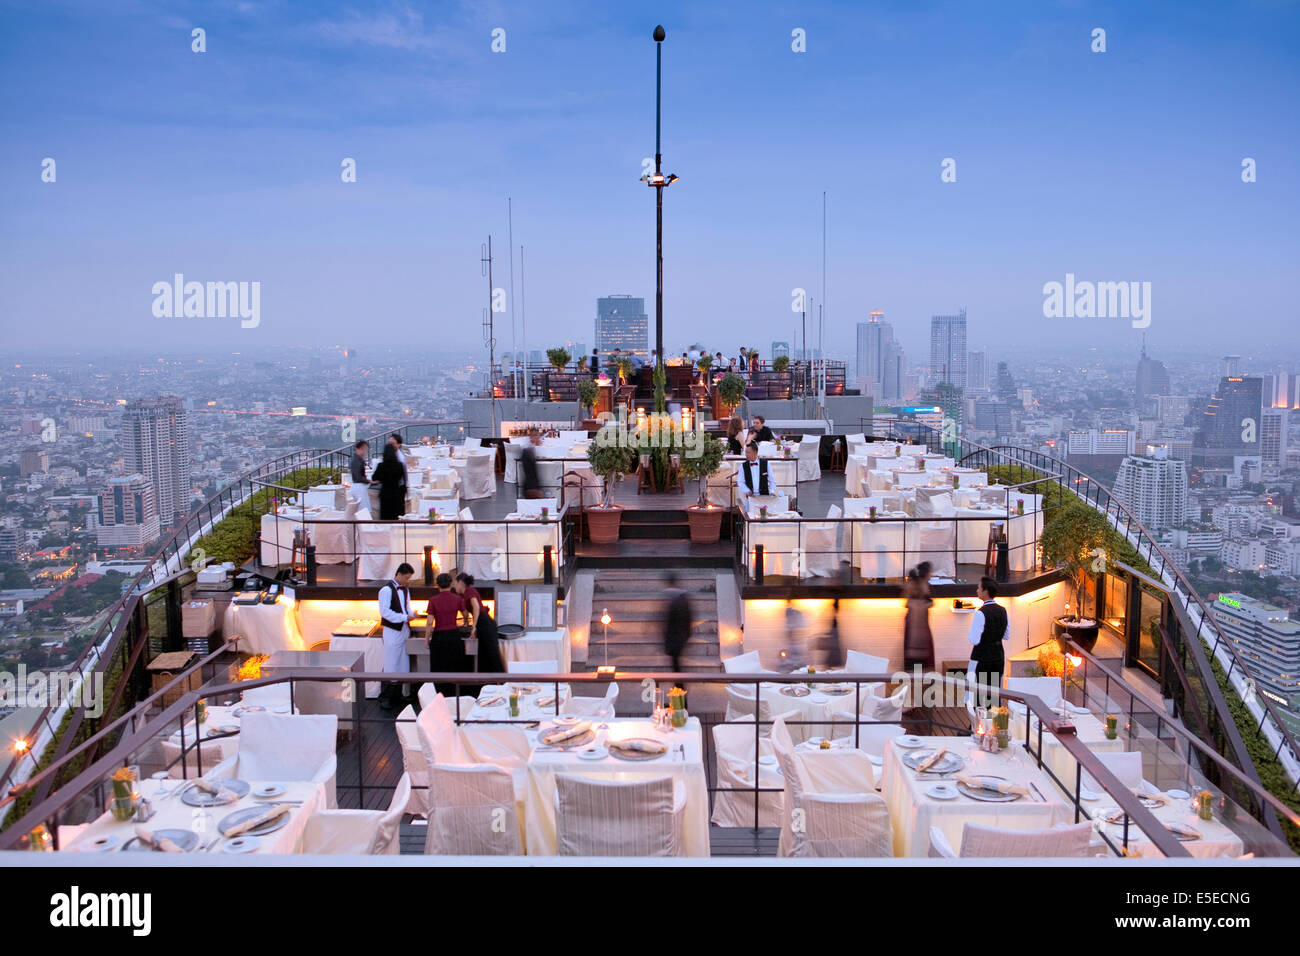 Vertigo restaurant and bar on the top of the Banyan Tree hotel in Bangkok, Thailand - Stock Image